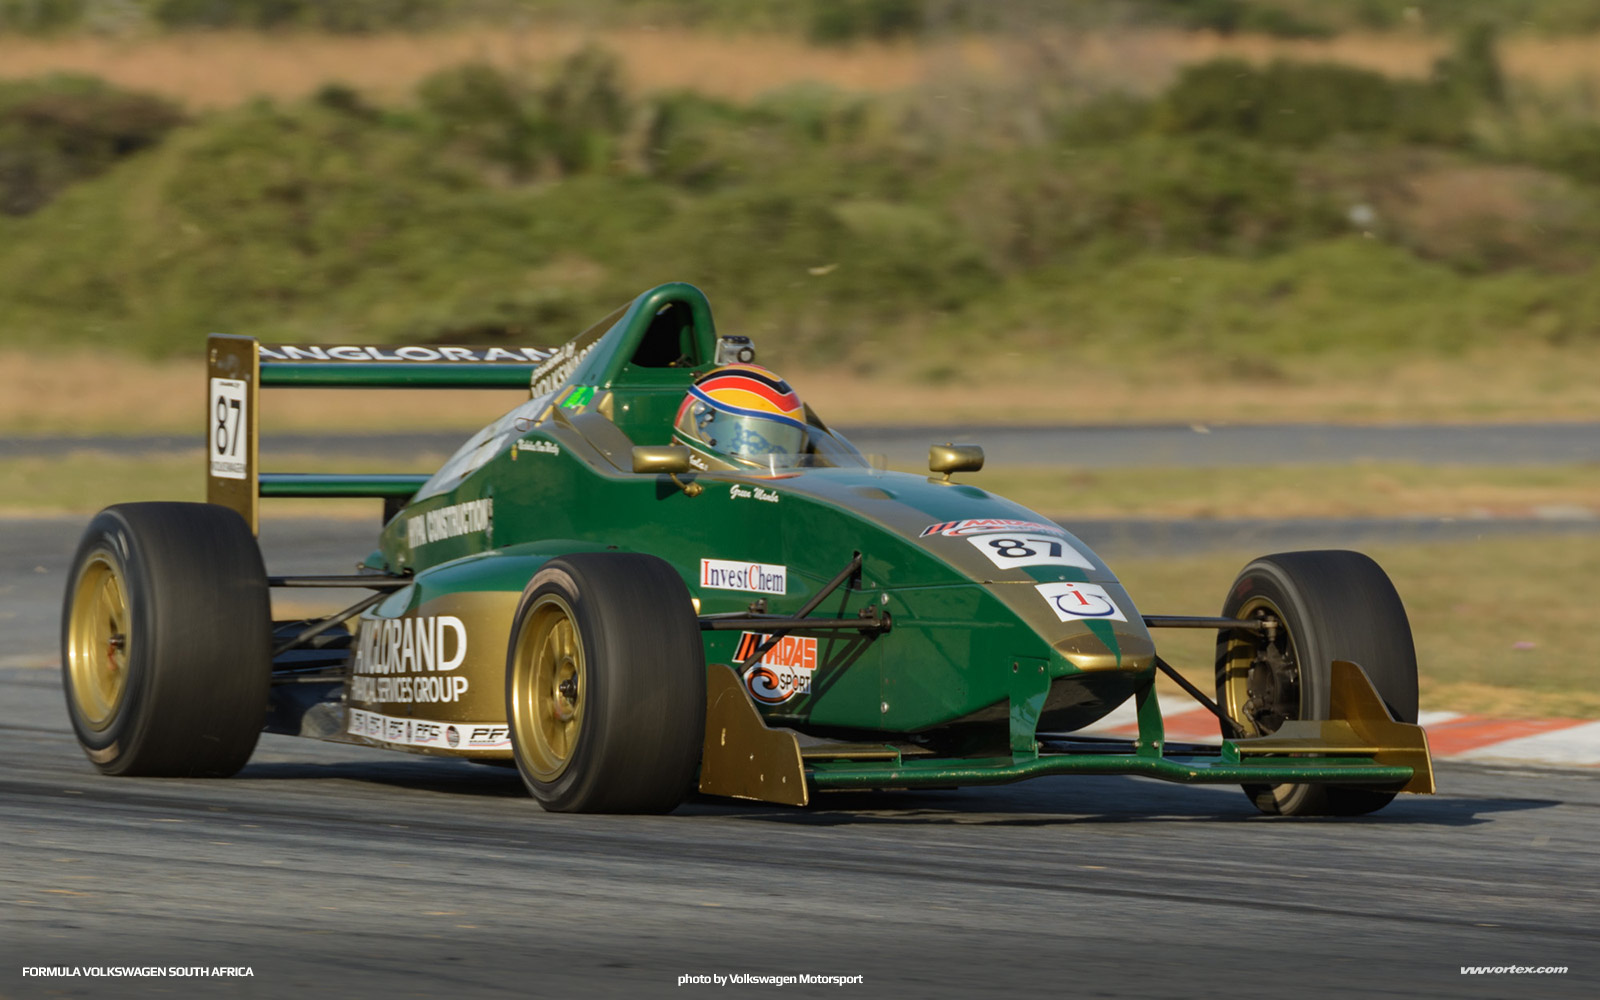 FormulaVolkswagenSouthAfrica